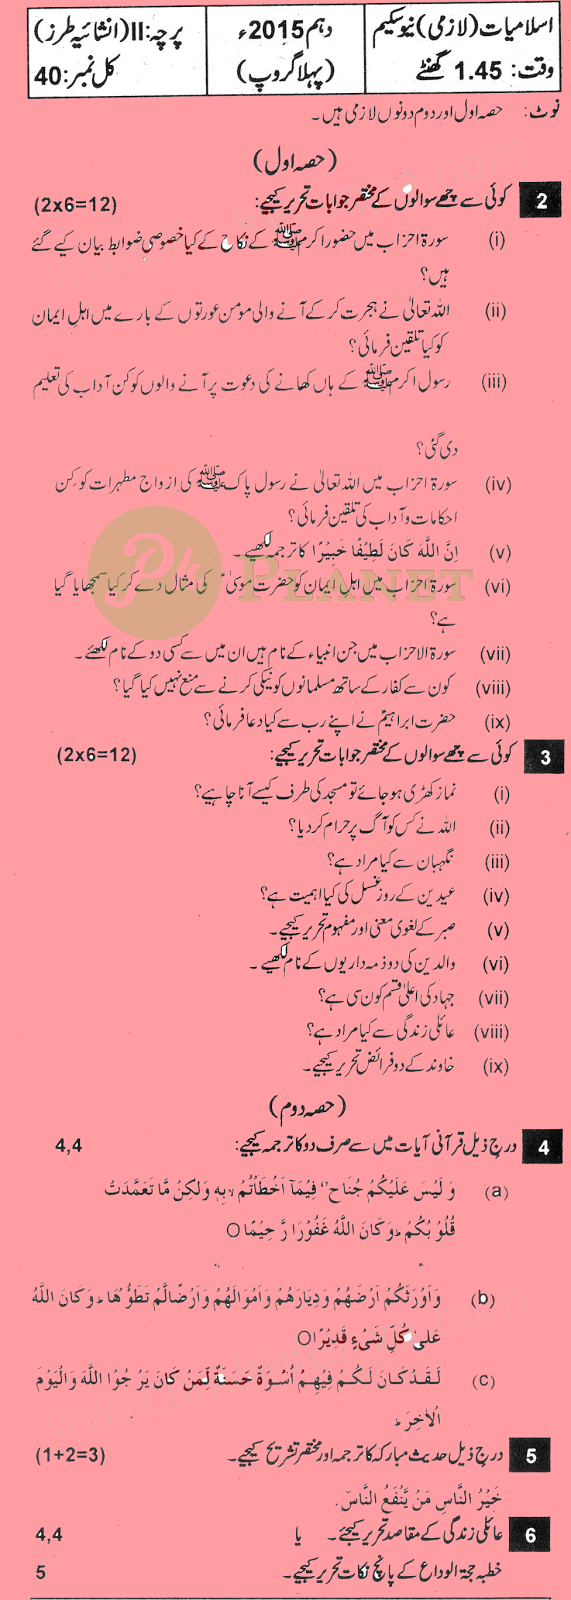 Past Papers of 10th Class Lahore Board 2015 Islamiat